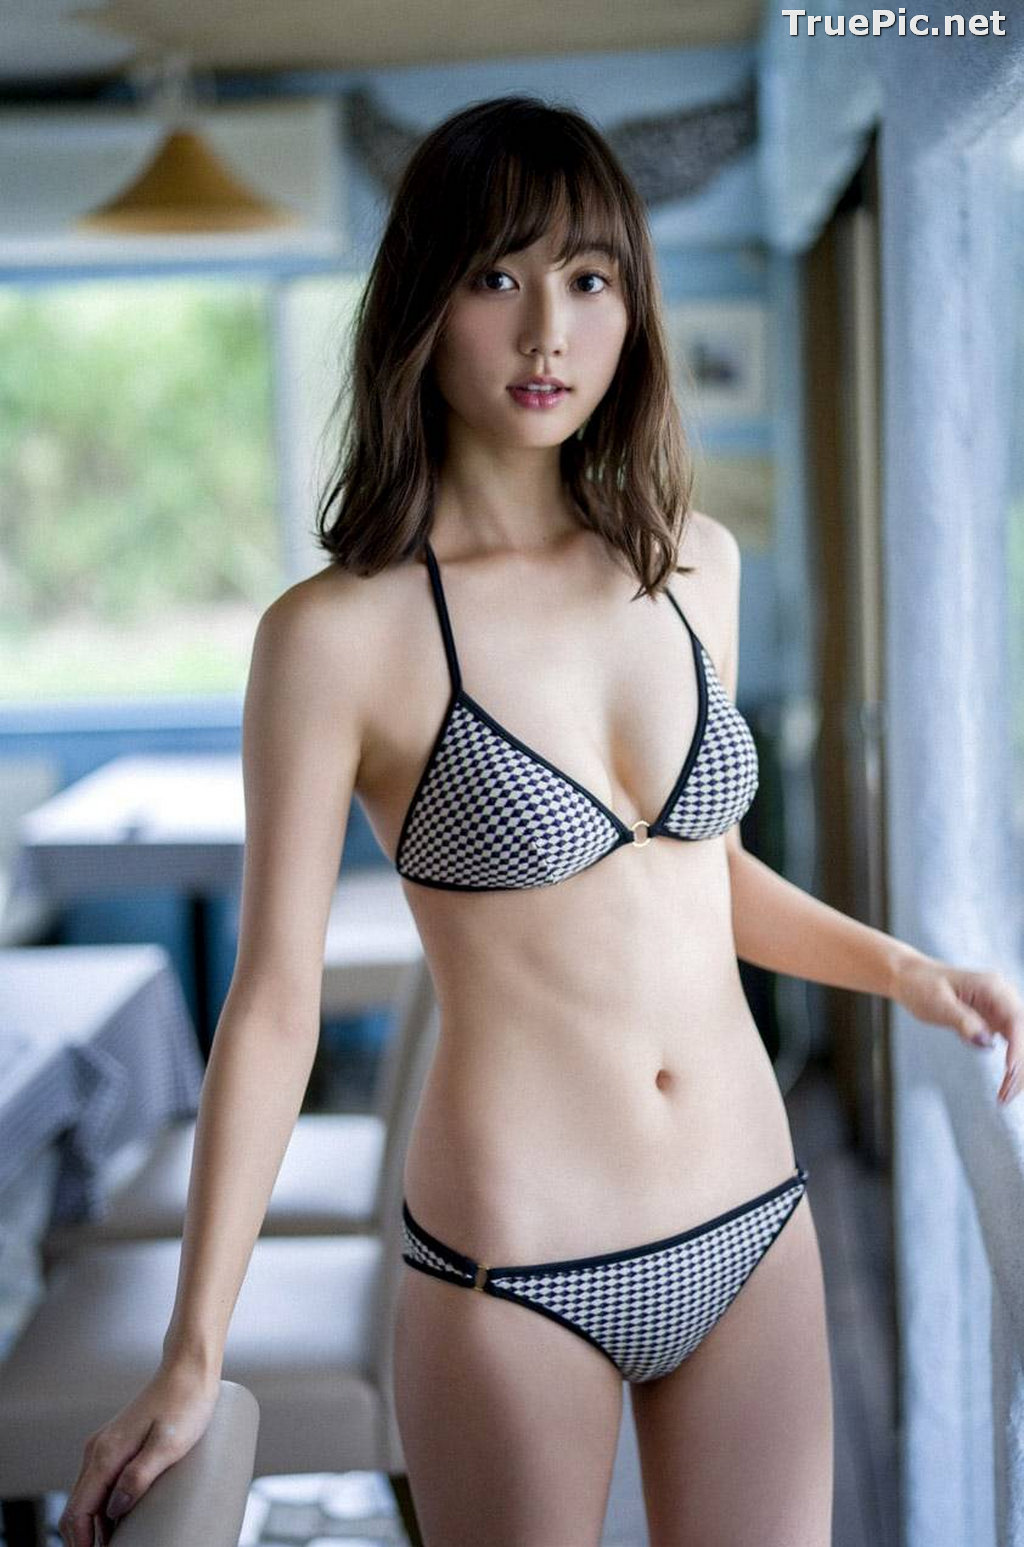 Image Japanese Model and Actress - Yuuna Suzuki - Sexy Picture Collection 2020 - TruePic.net - Picture-8